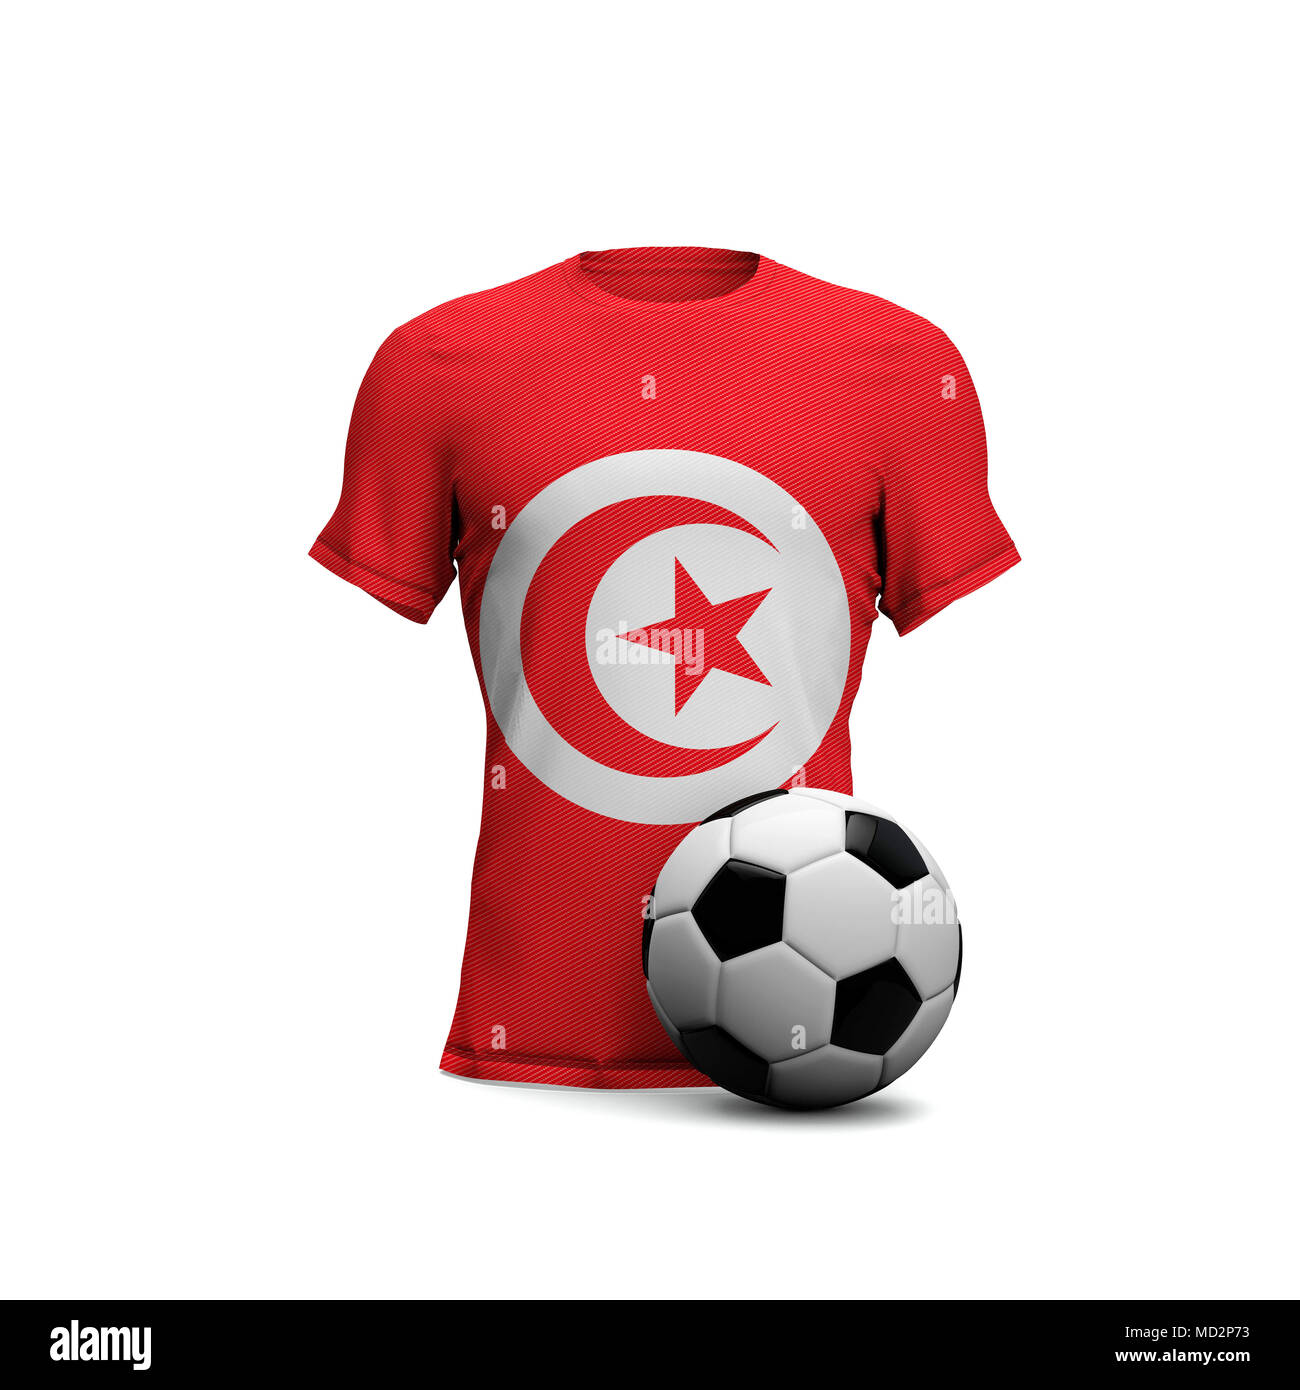 lowest price 634dc e566b Tunisia soccer shirt with national flag and football ball ...